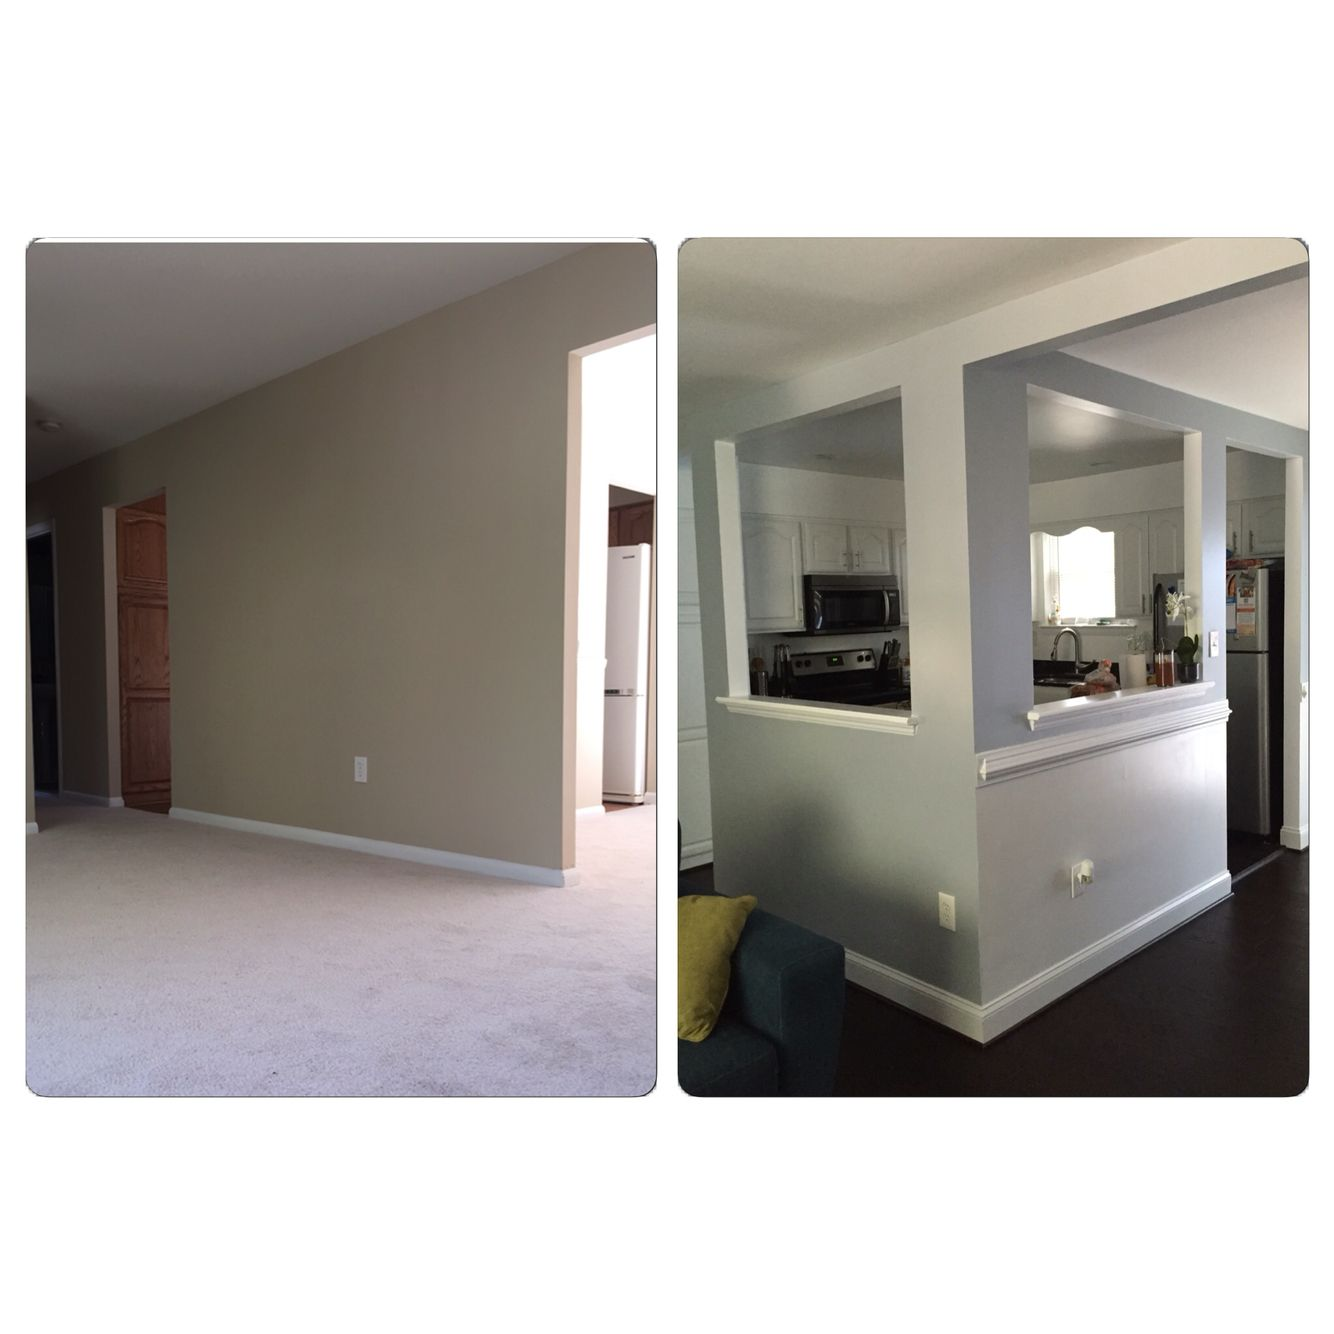 Creating An Open Kitchen And Dining Room: Before And After. We Opened Up The